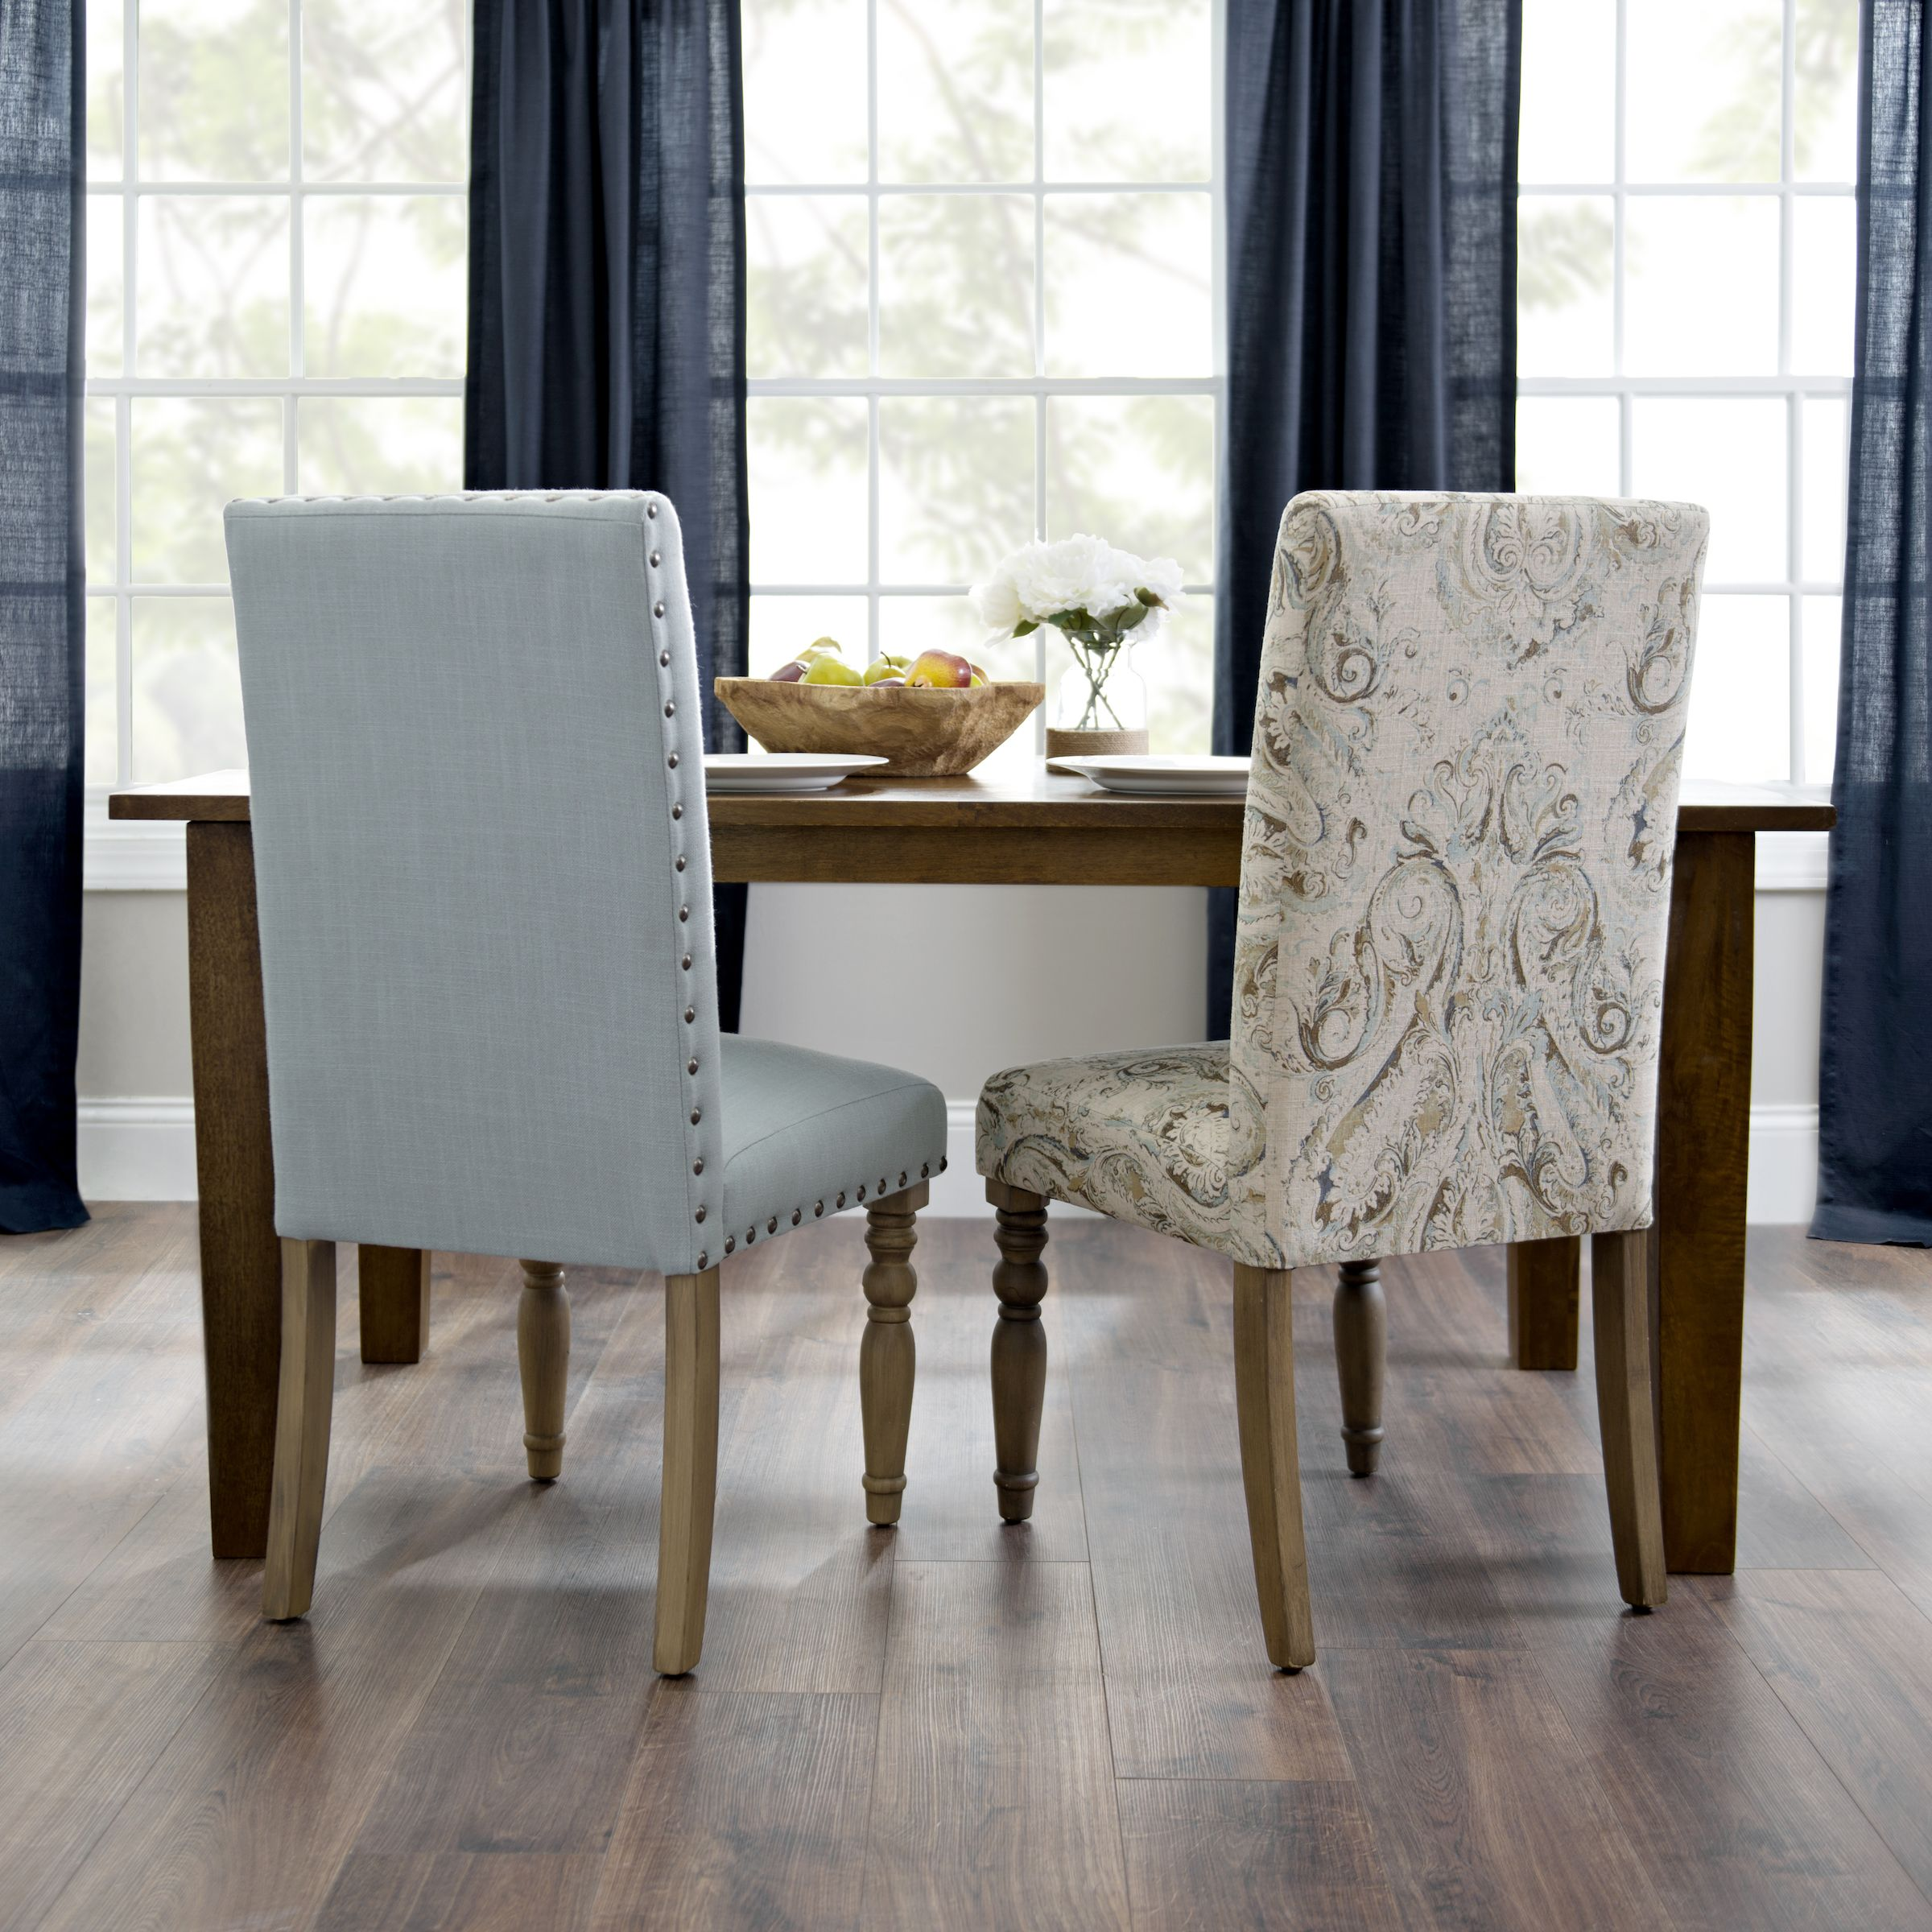 Update your dining area with new chairs!